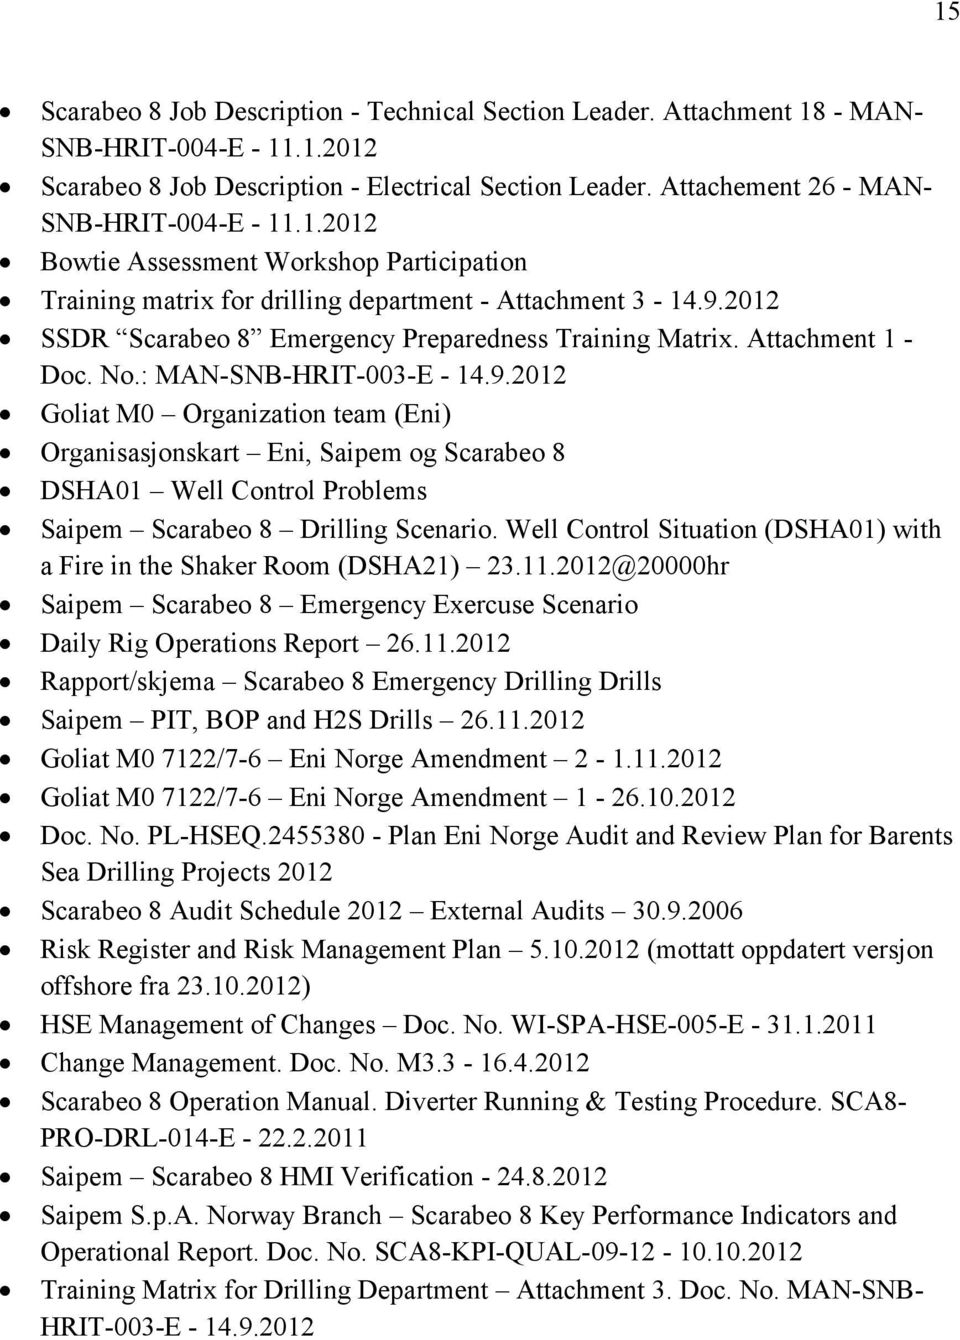 2012 SSDR Scarabeo 8 Emergency Preparedness Training Matrix. Attachment 1 - Doc. No.: MAN-SNB-HRIT-003-E - 14.9.